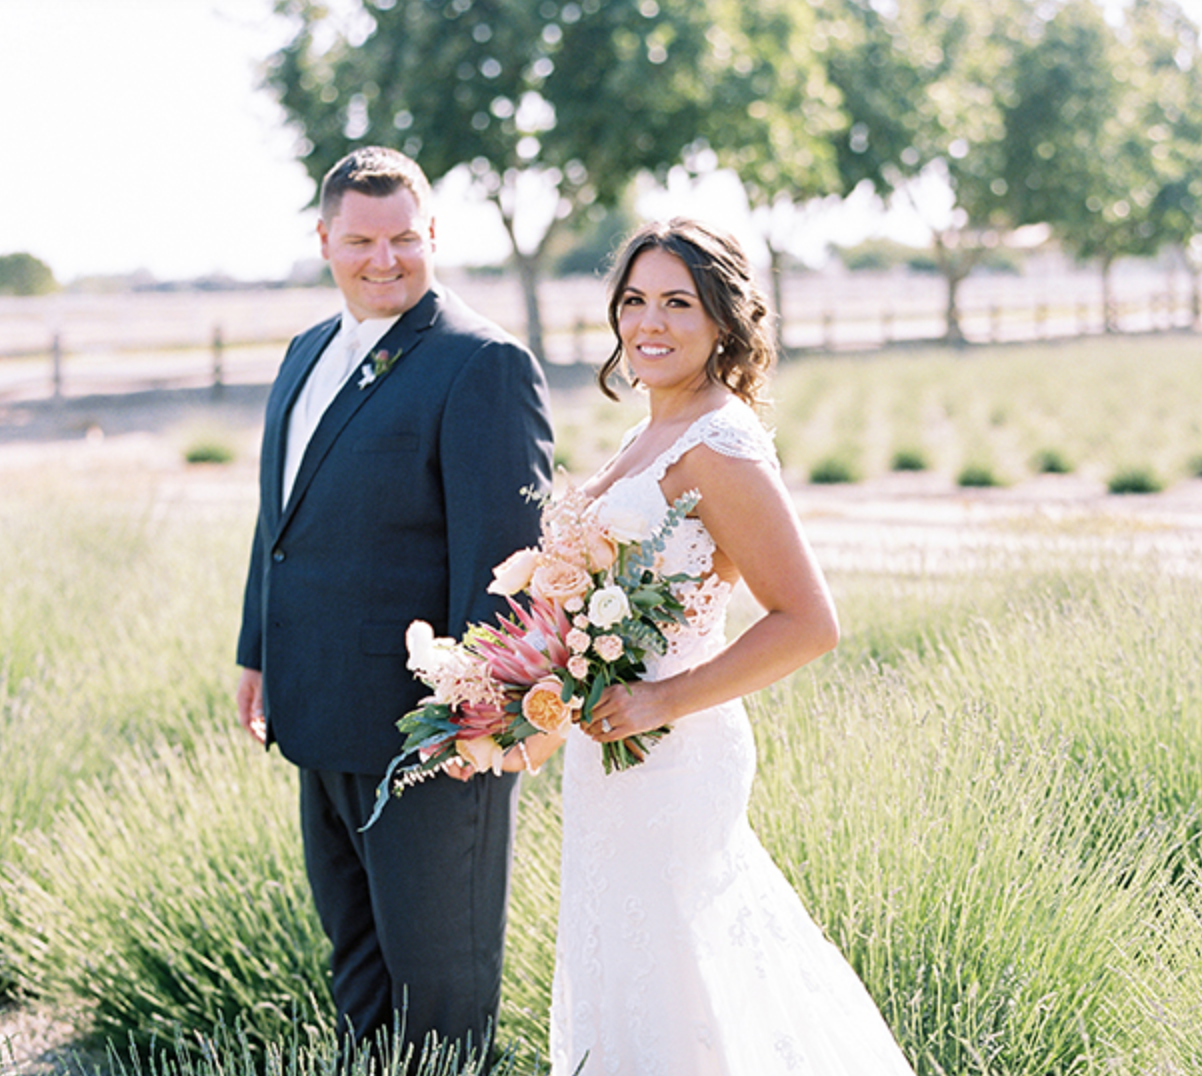 Garden Inspired Wedding - A look inside a Lavender Farms wedding, from mis-matched bridesmaids dresses to DIY decor.